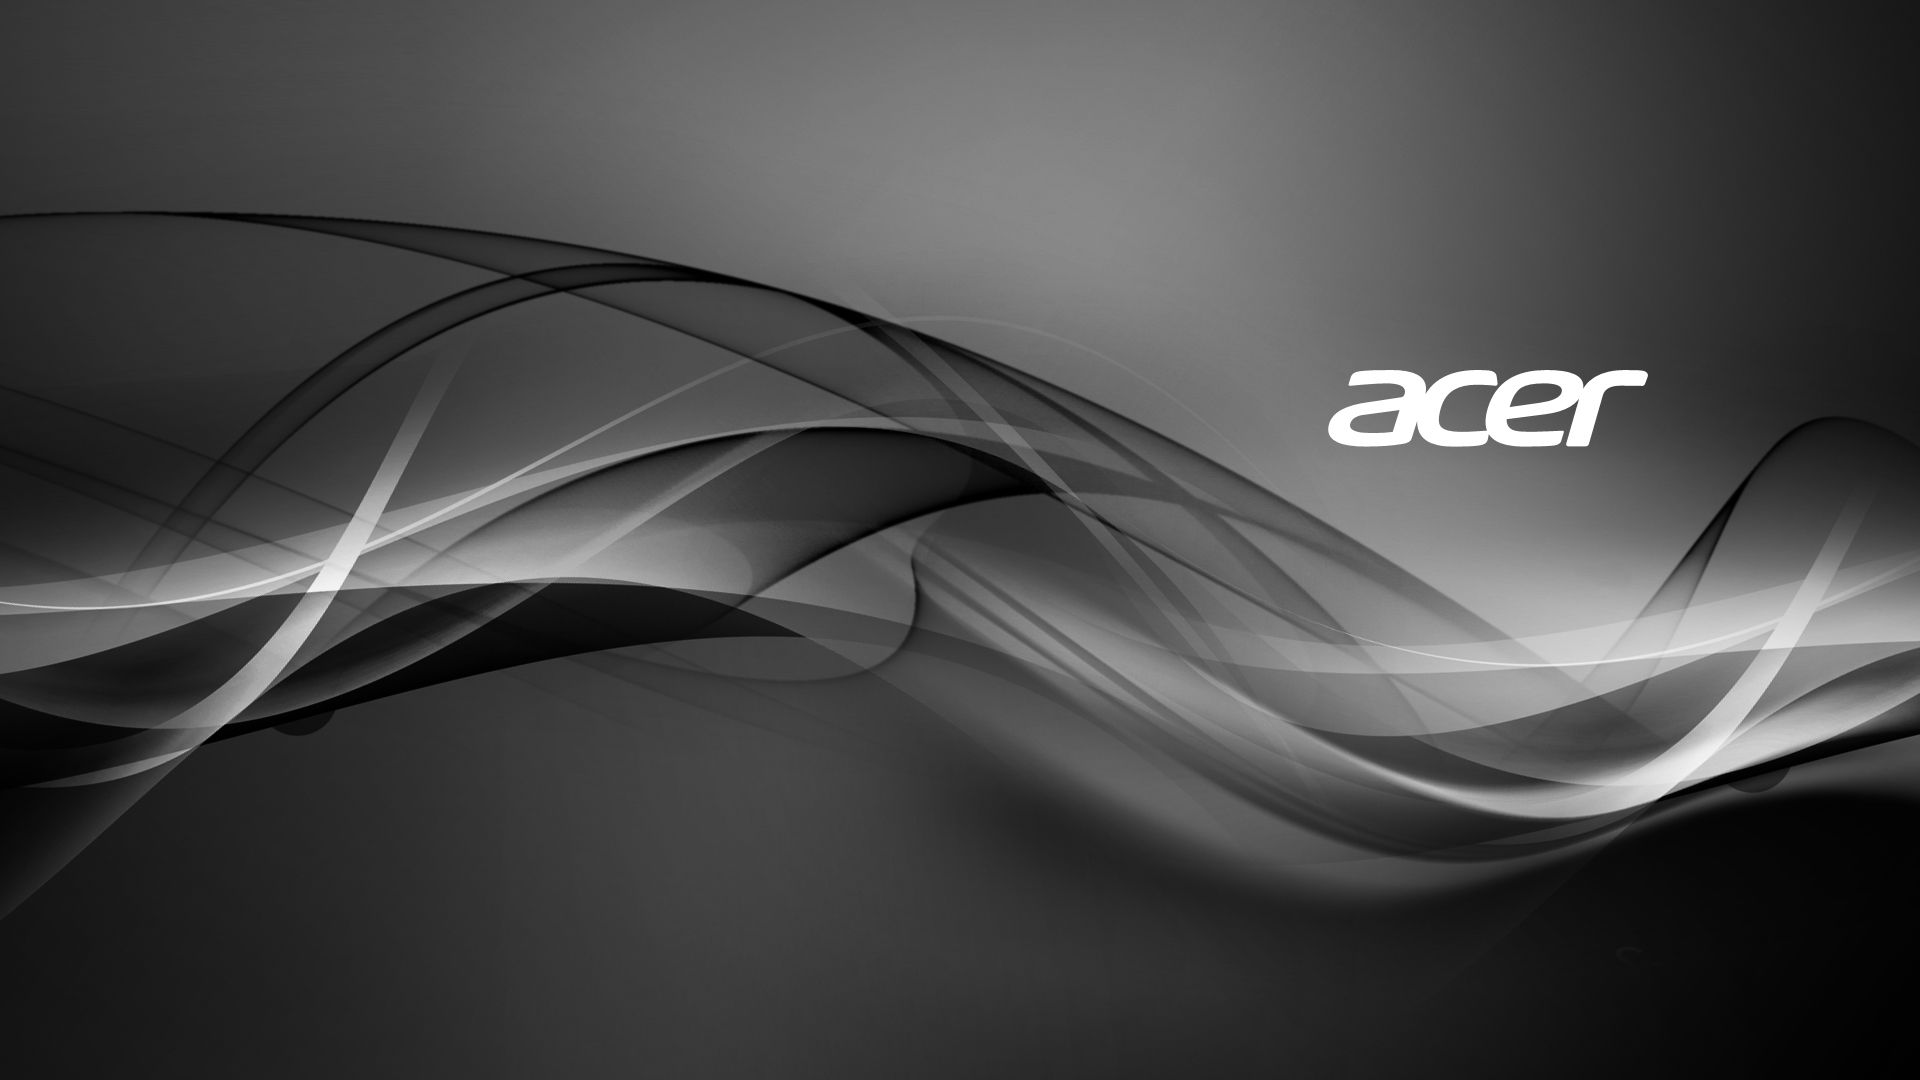 Acer Hd Wallpapers Free Wallpaper Downloads Acer Hd Desktop